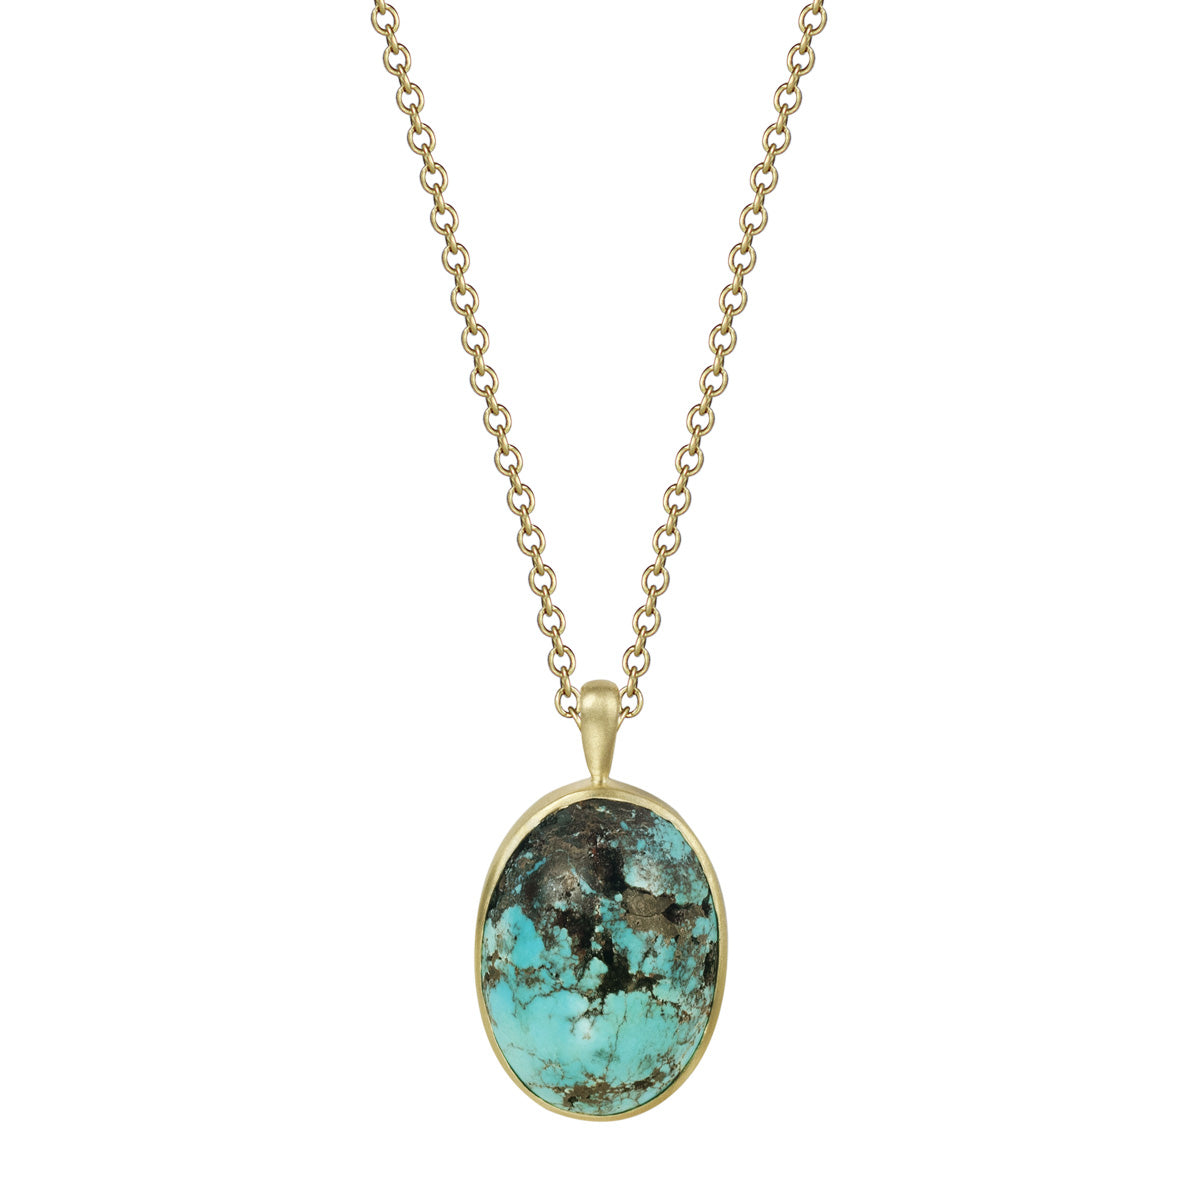 18K Gold Persian Turquoise Oval Pendant